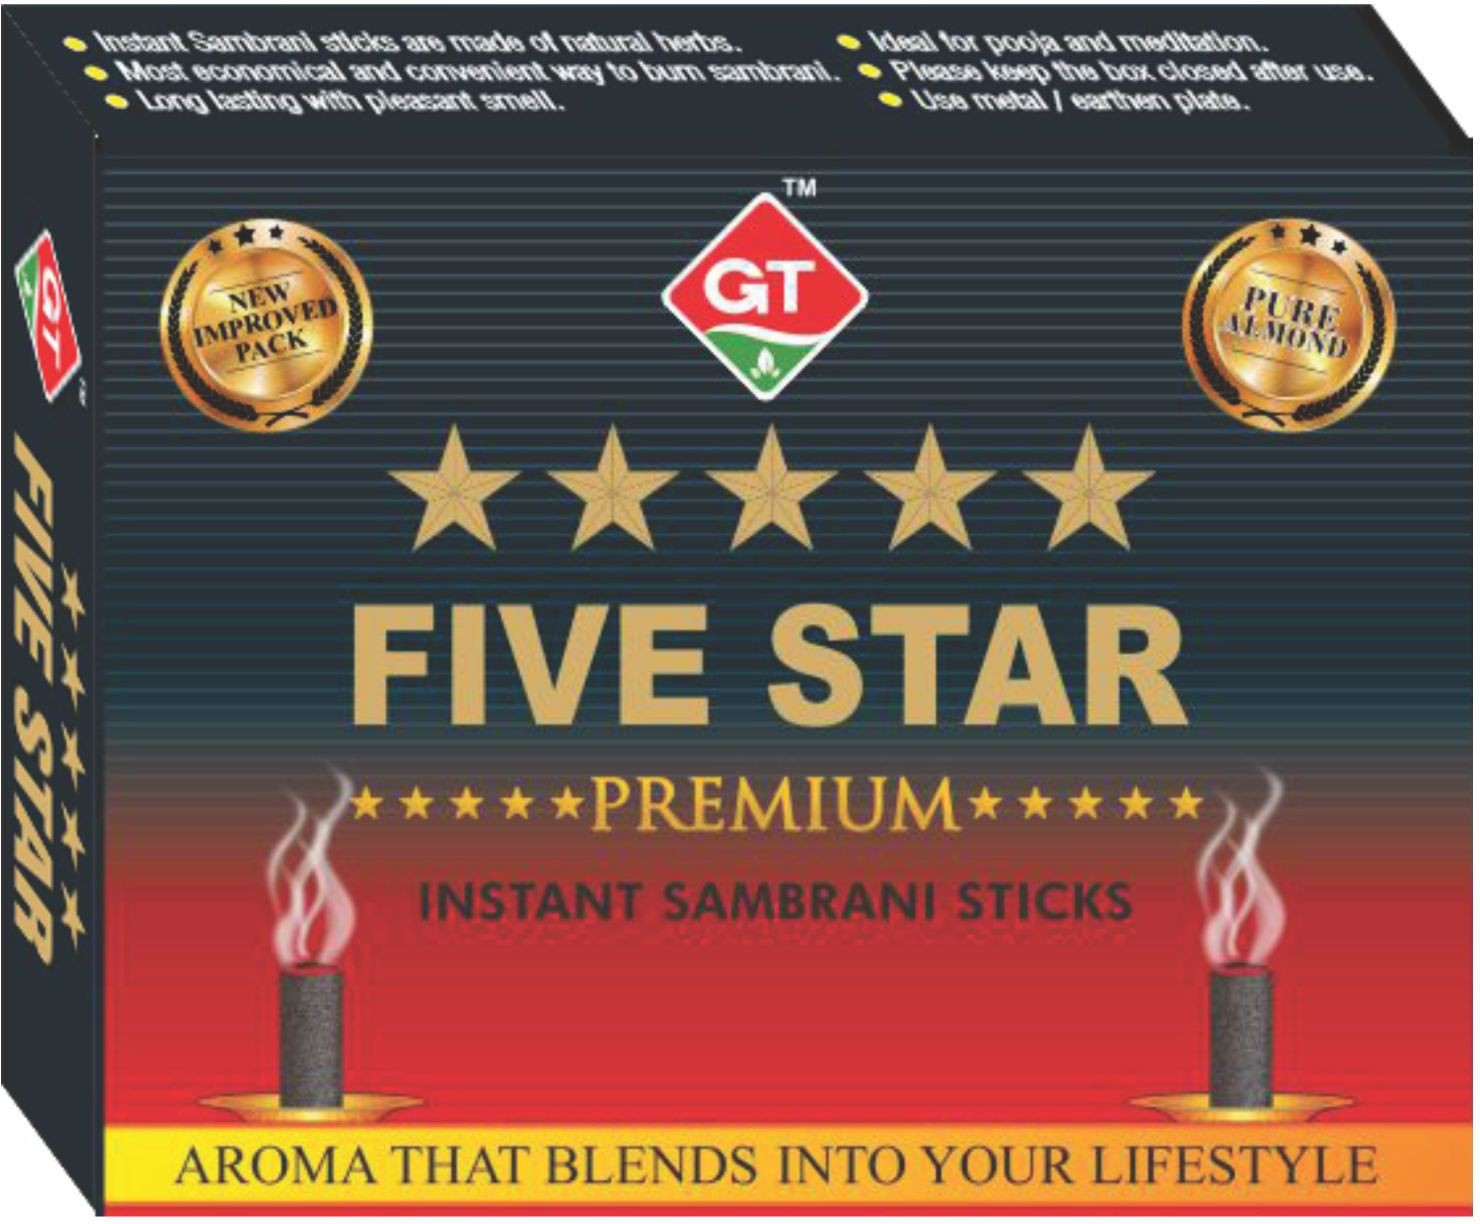 Gt 8906065840198 Five Star Premium Instant Sambrani Sticks - Best